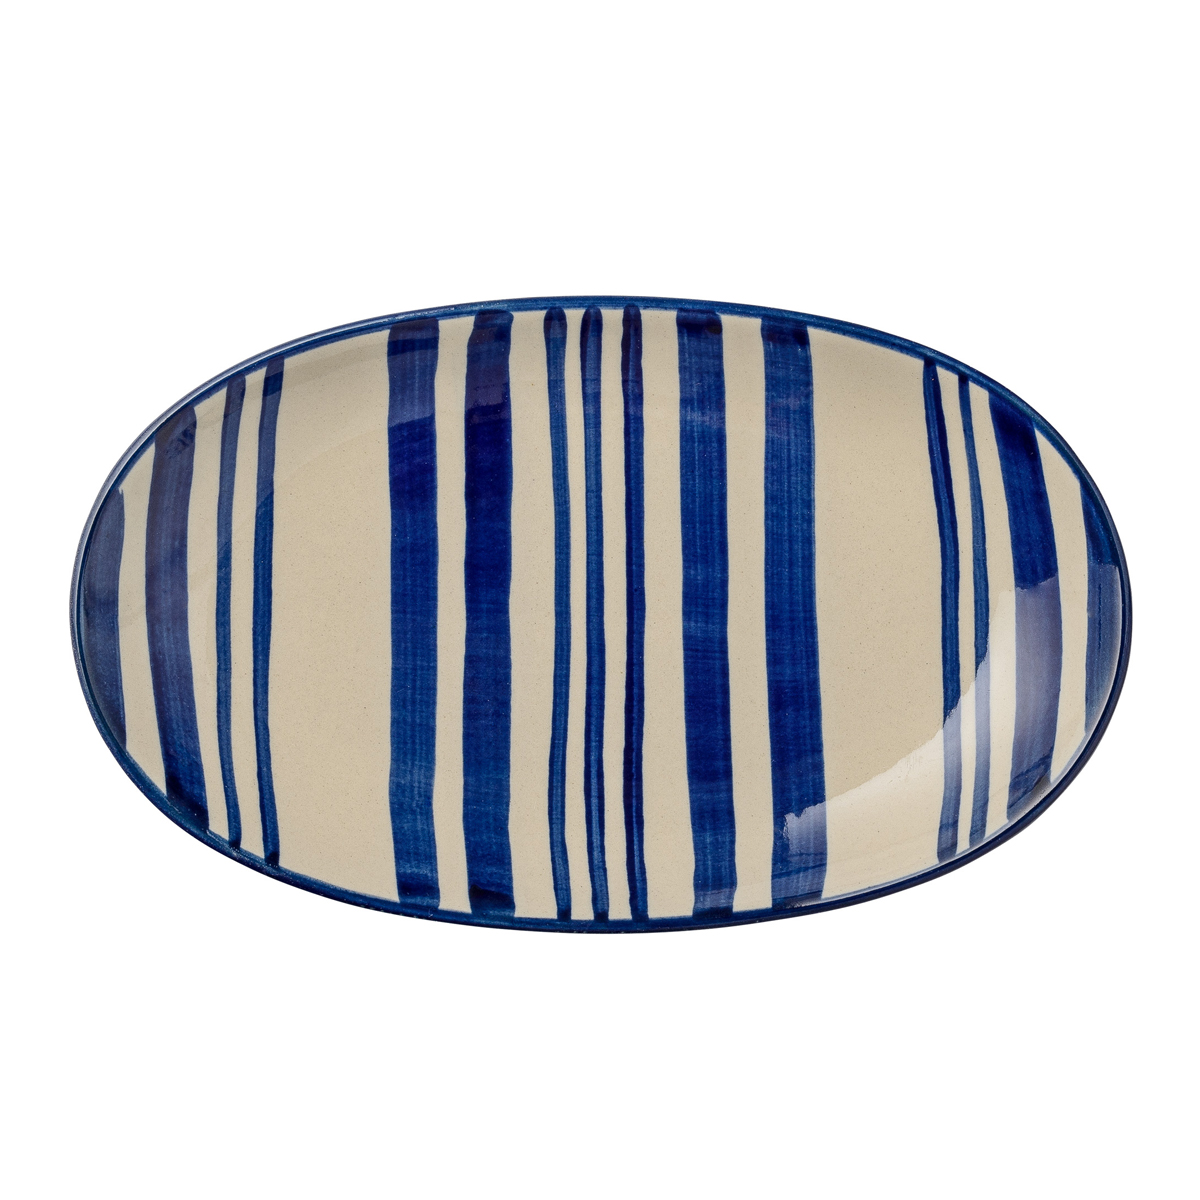 day-home-blue-stripe-oval-serving-plate